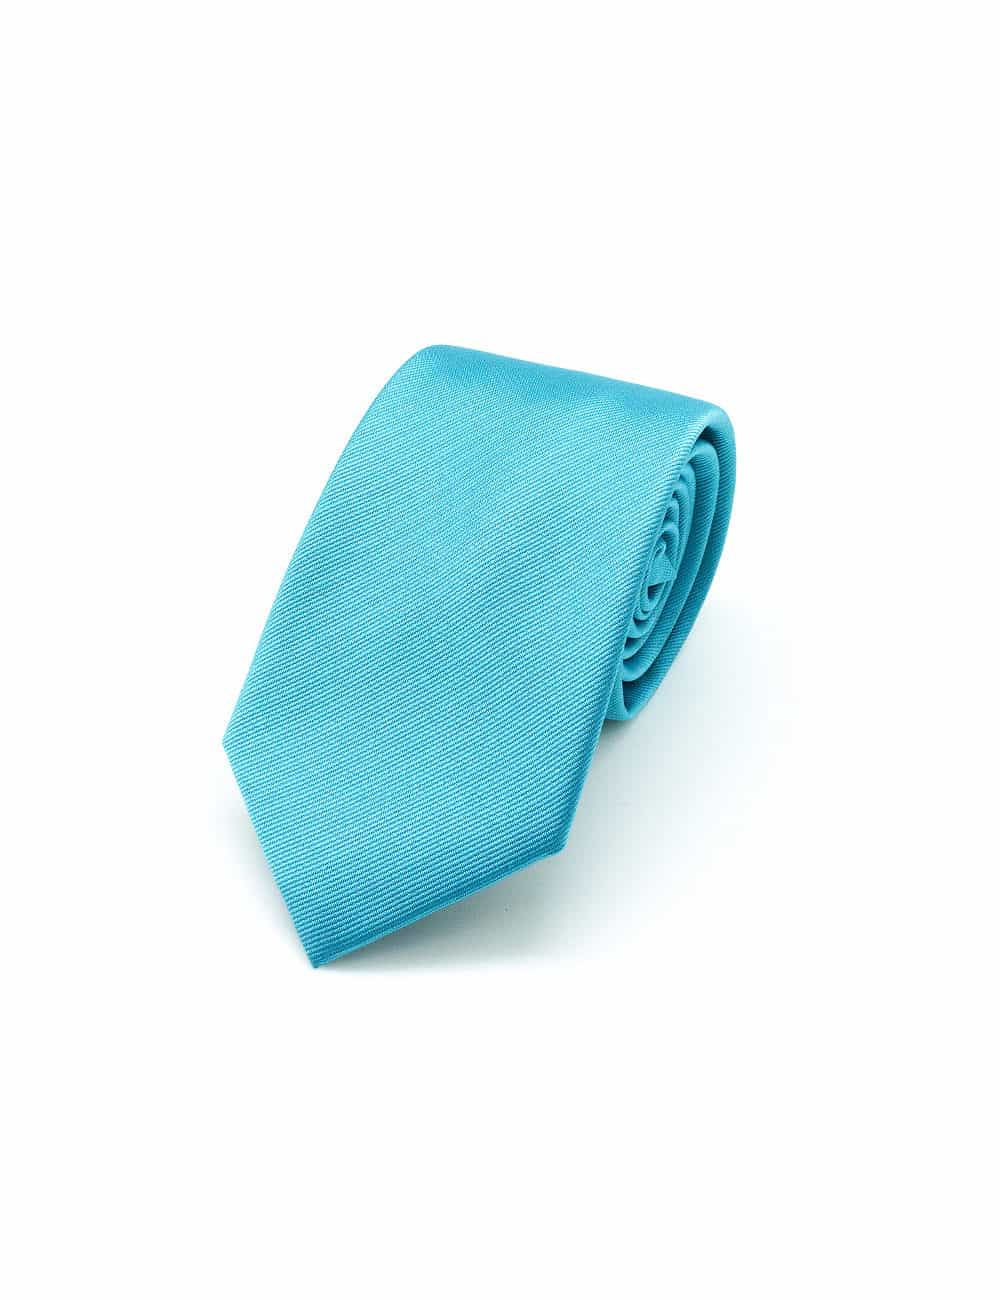 Solid Turquoise Woven Necktie NT23.4